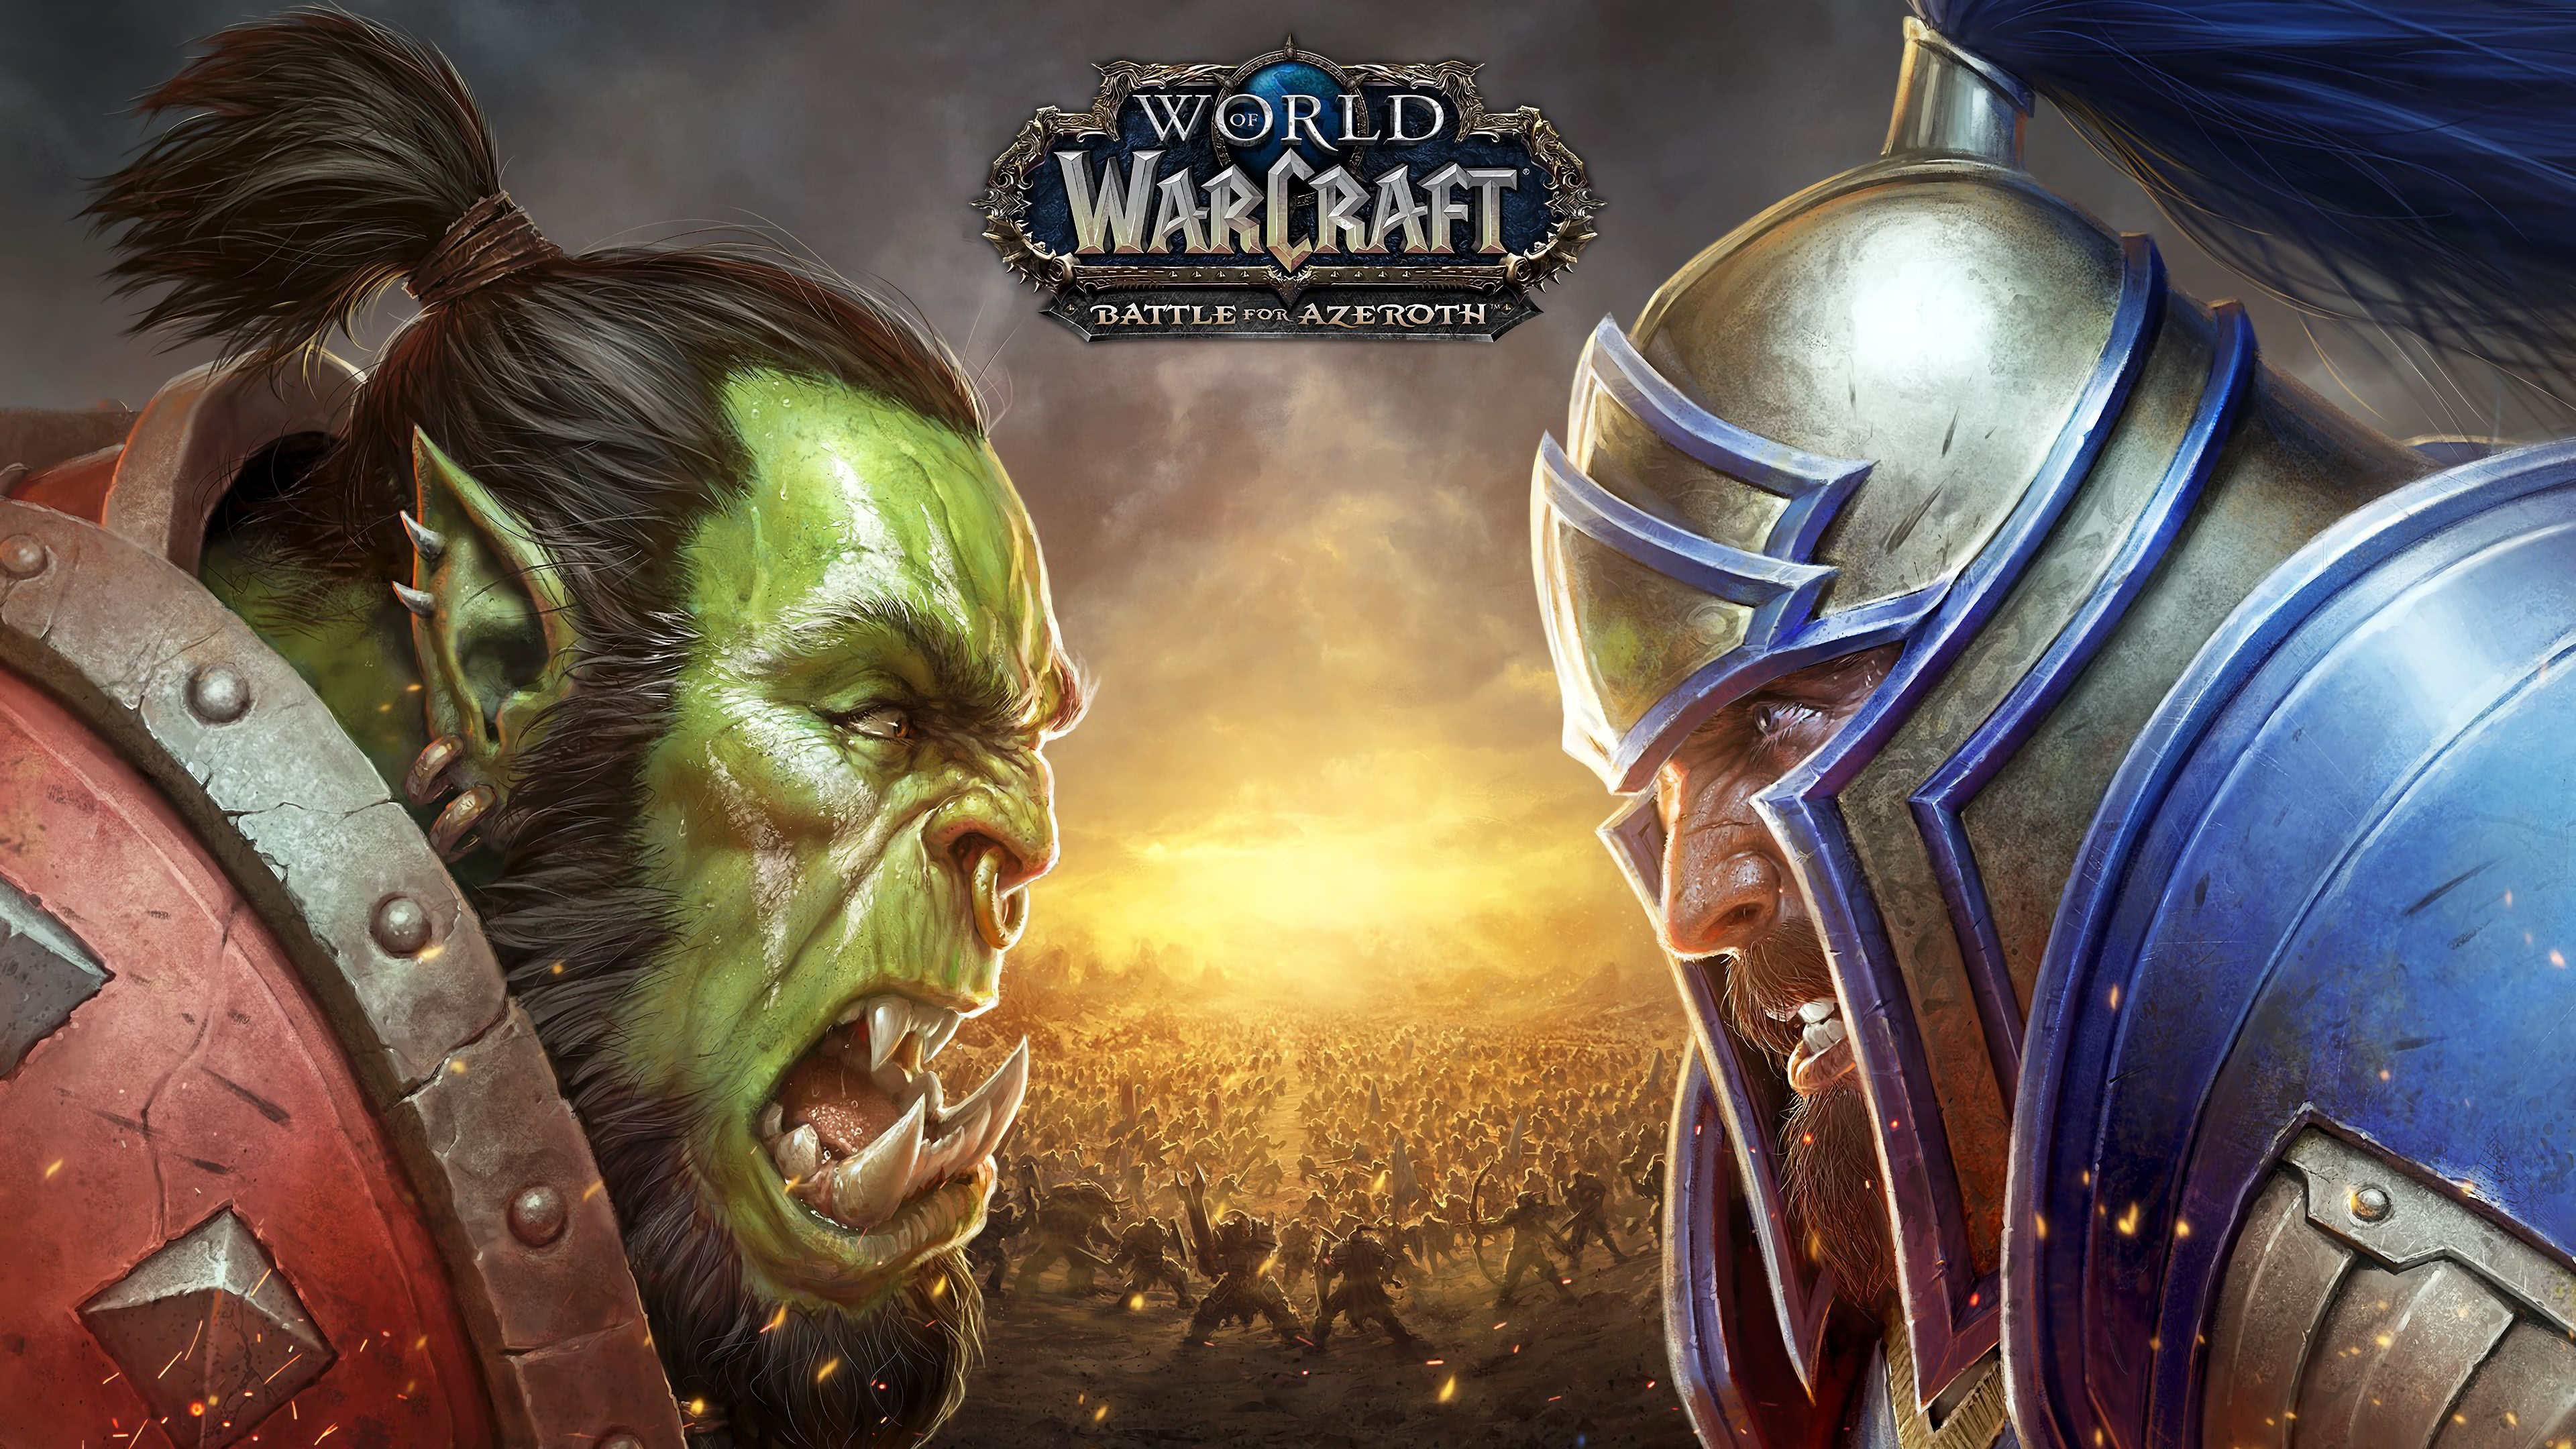 World Of Warcraft Battle For Azeroth Horde Vs Alliance Uhd 4k